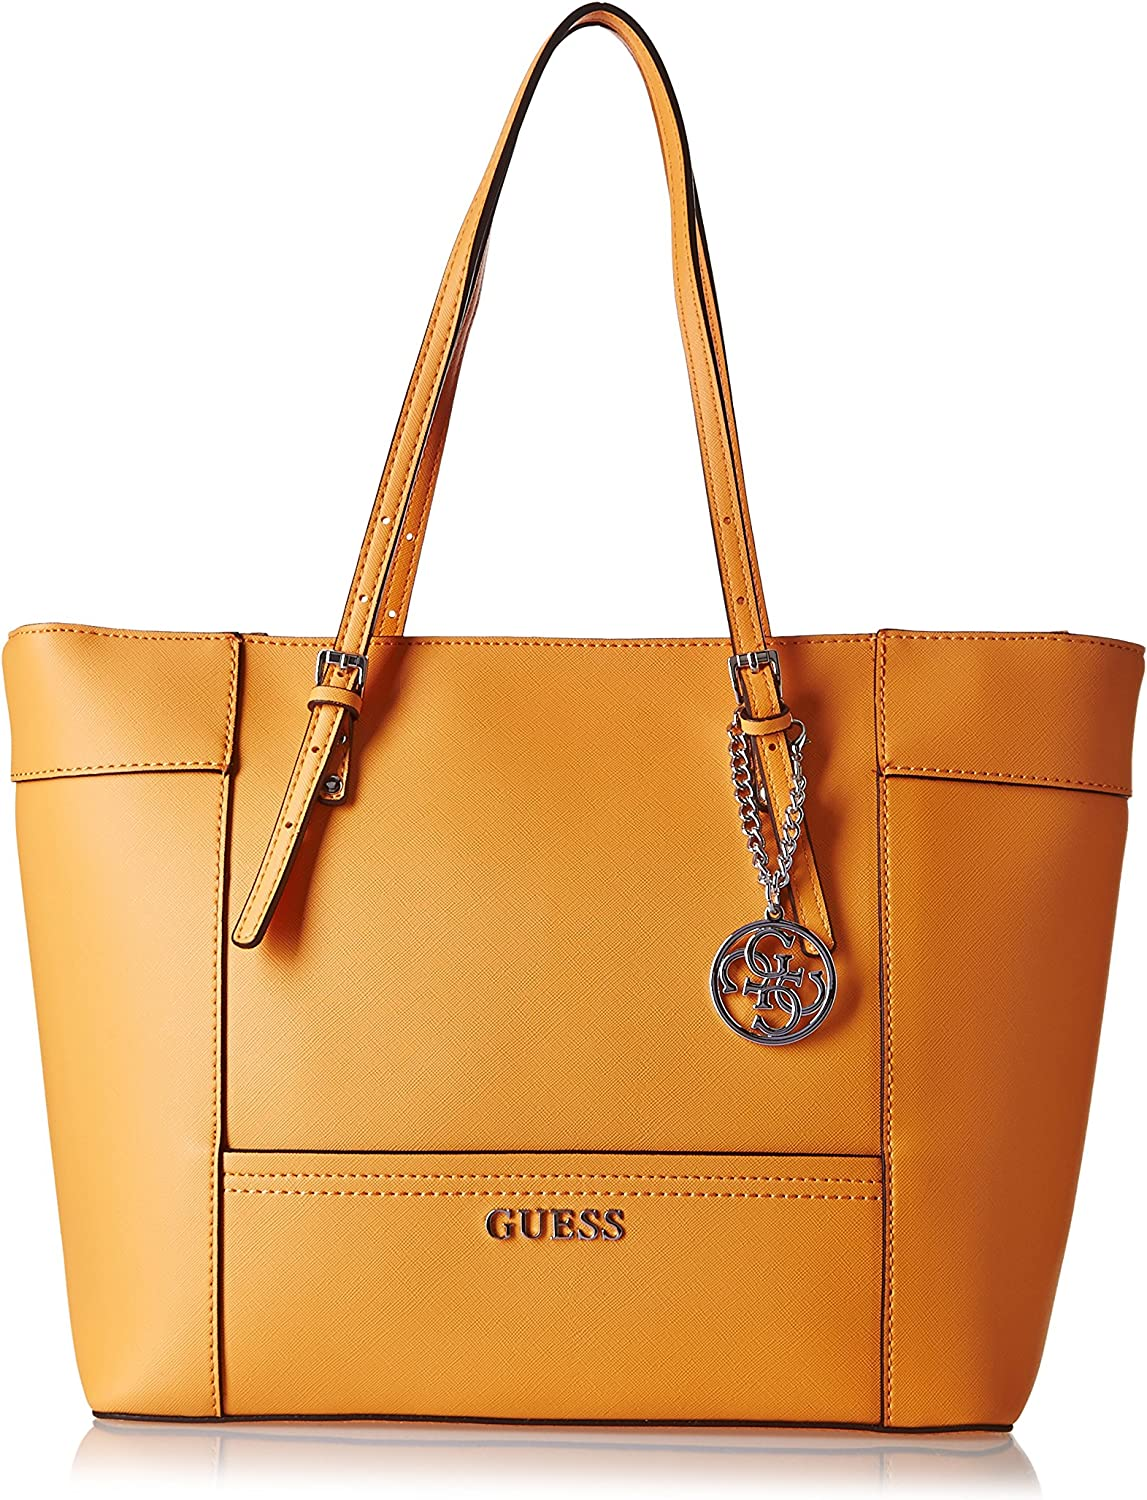 sac guess 2017 orange